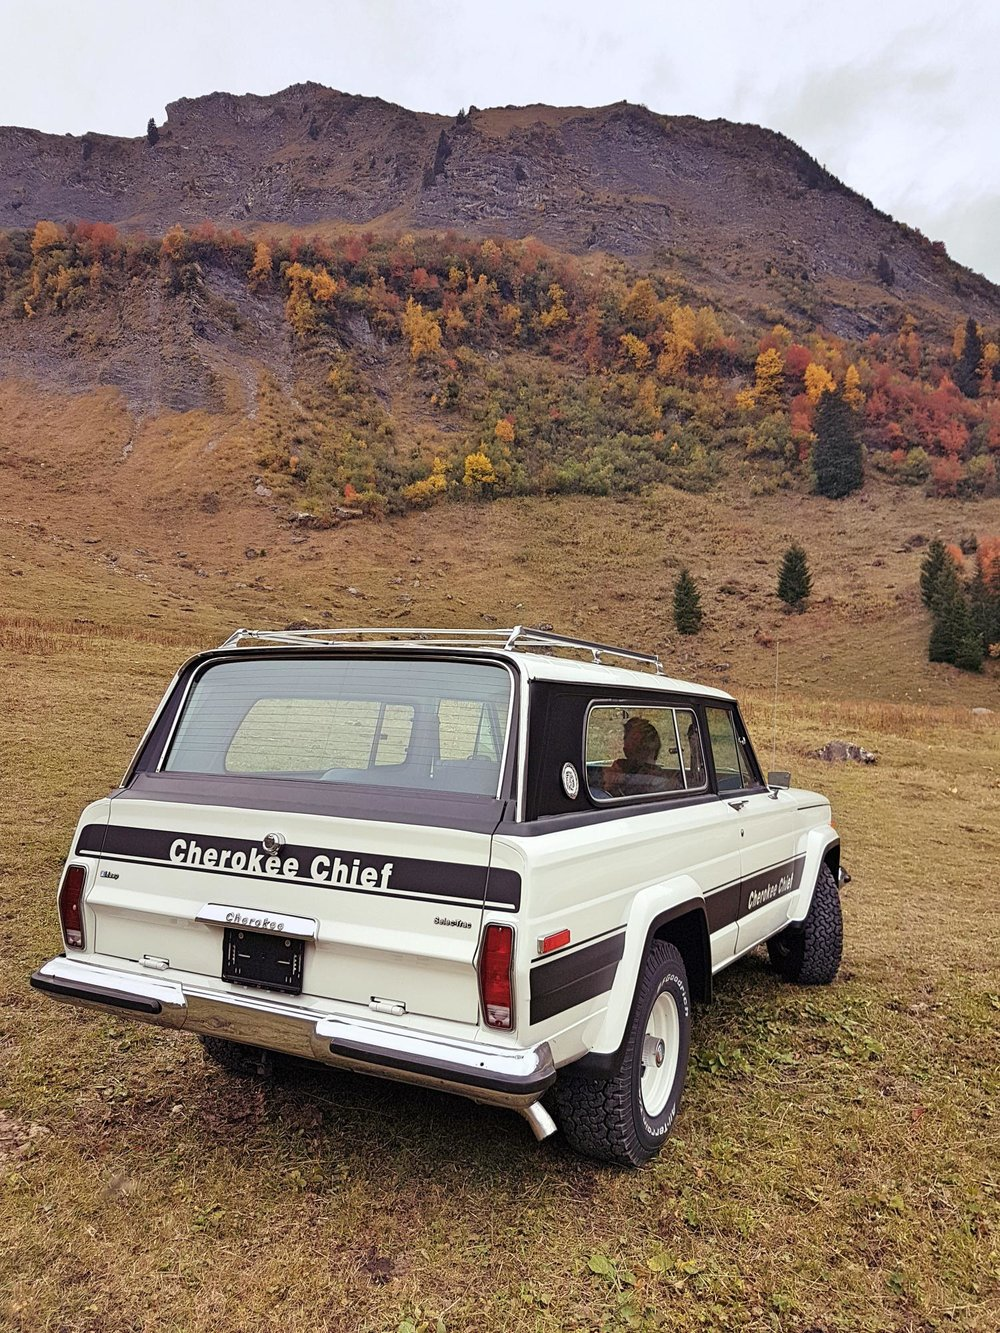 jeep-cherokee-chief-1978-shooting-morgins-switzerland-59.jpg